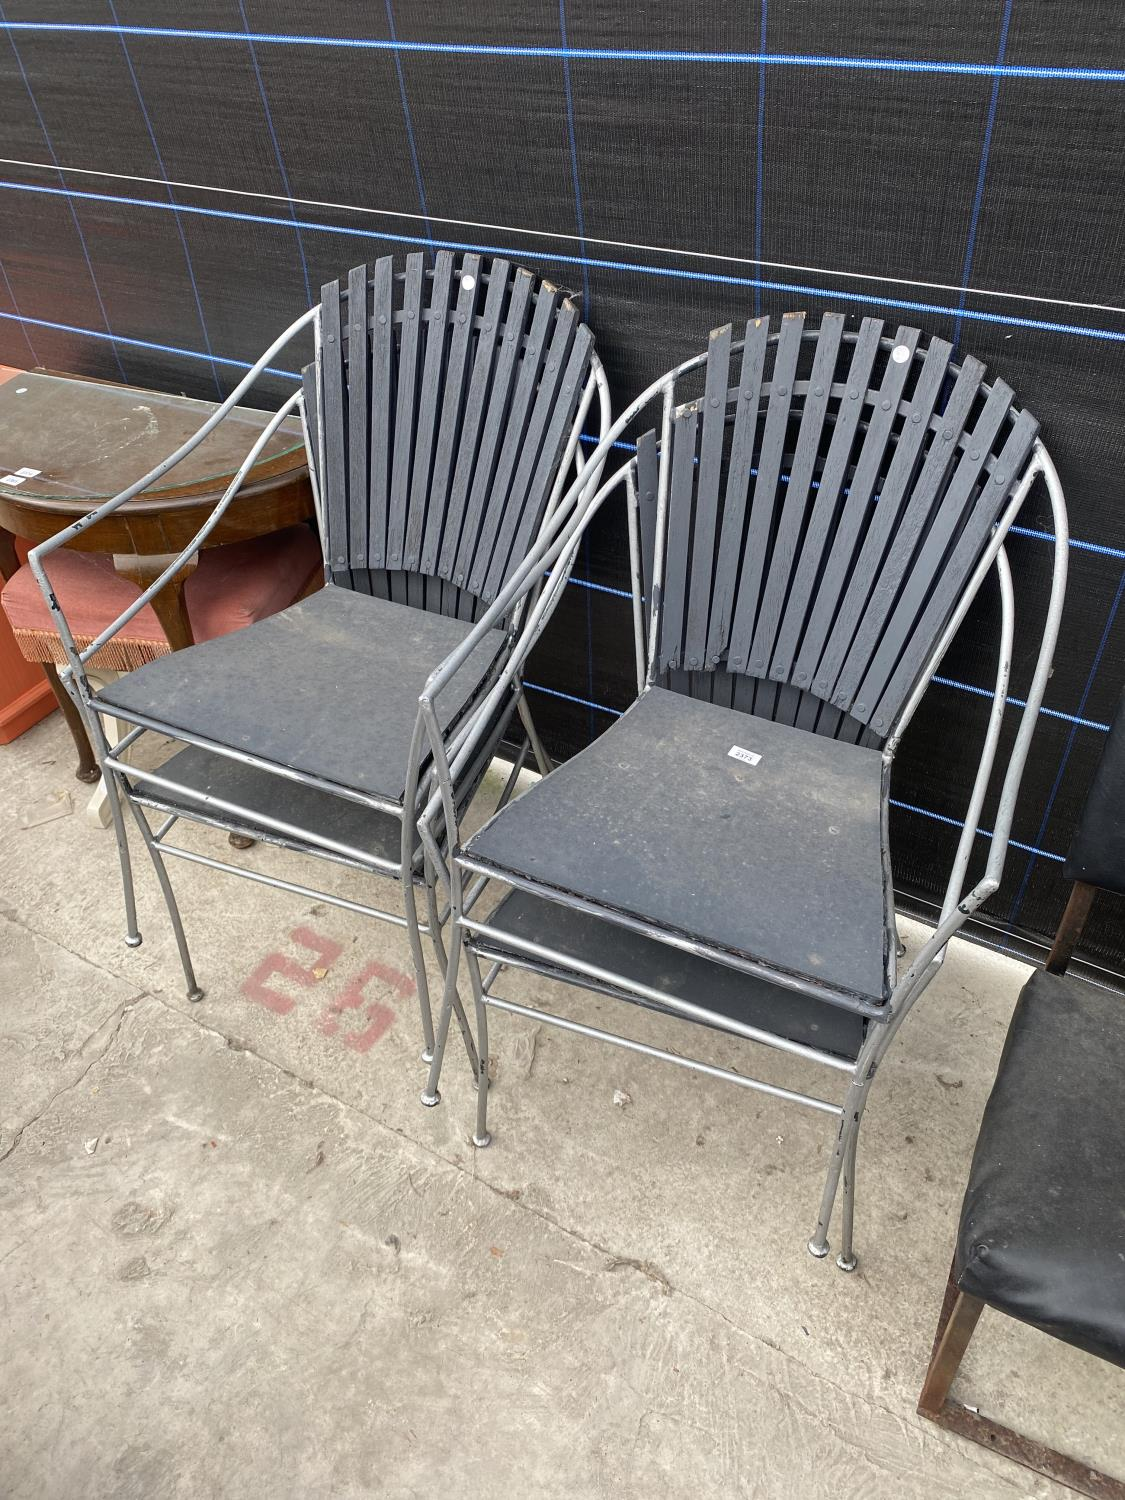 FOUR METAL FRAMED PATIO CHAIRS